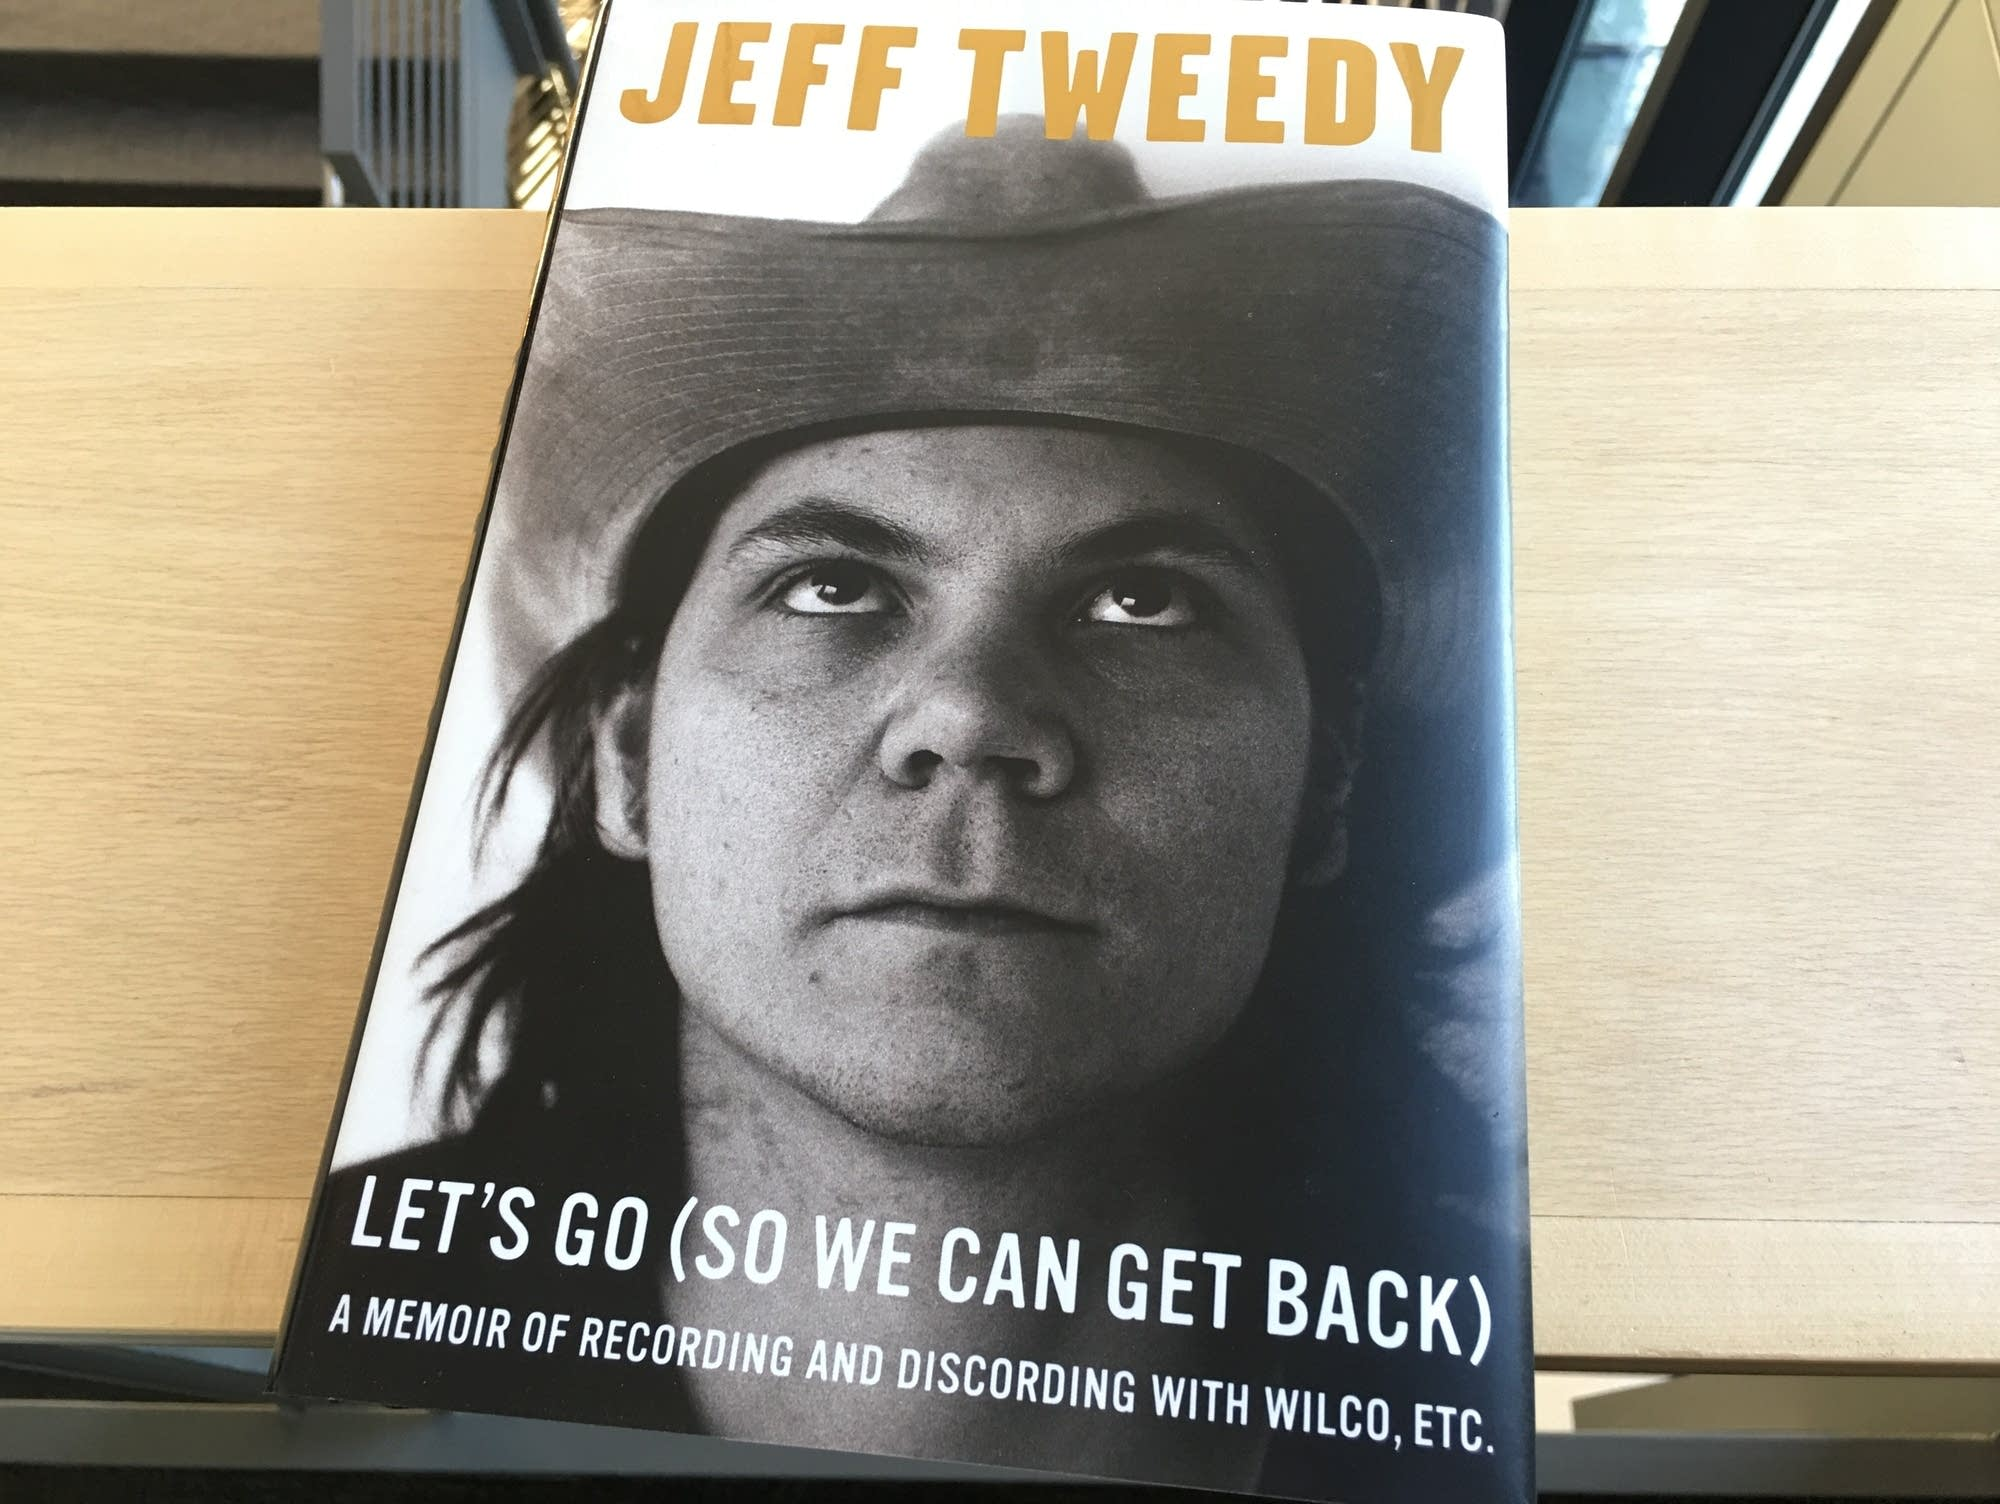 Jeff Tweedy's 'Let's Go (So We Can Get Back).'